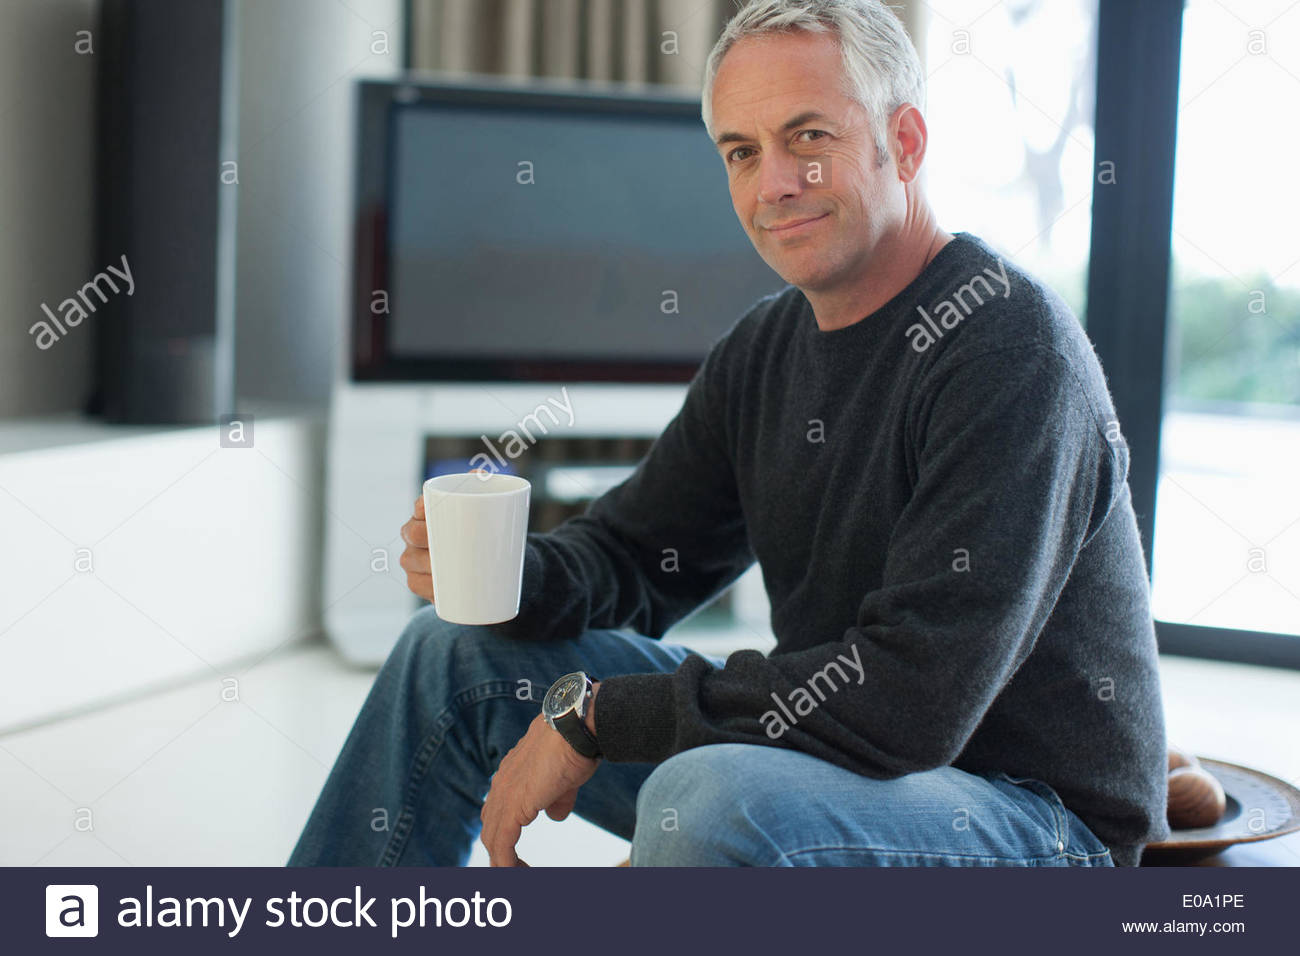 Man drinking coffee in living room - Stock Image